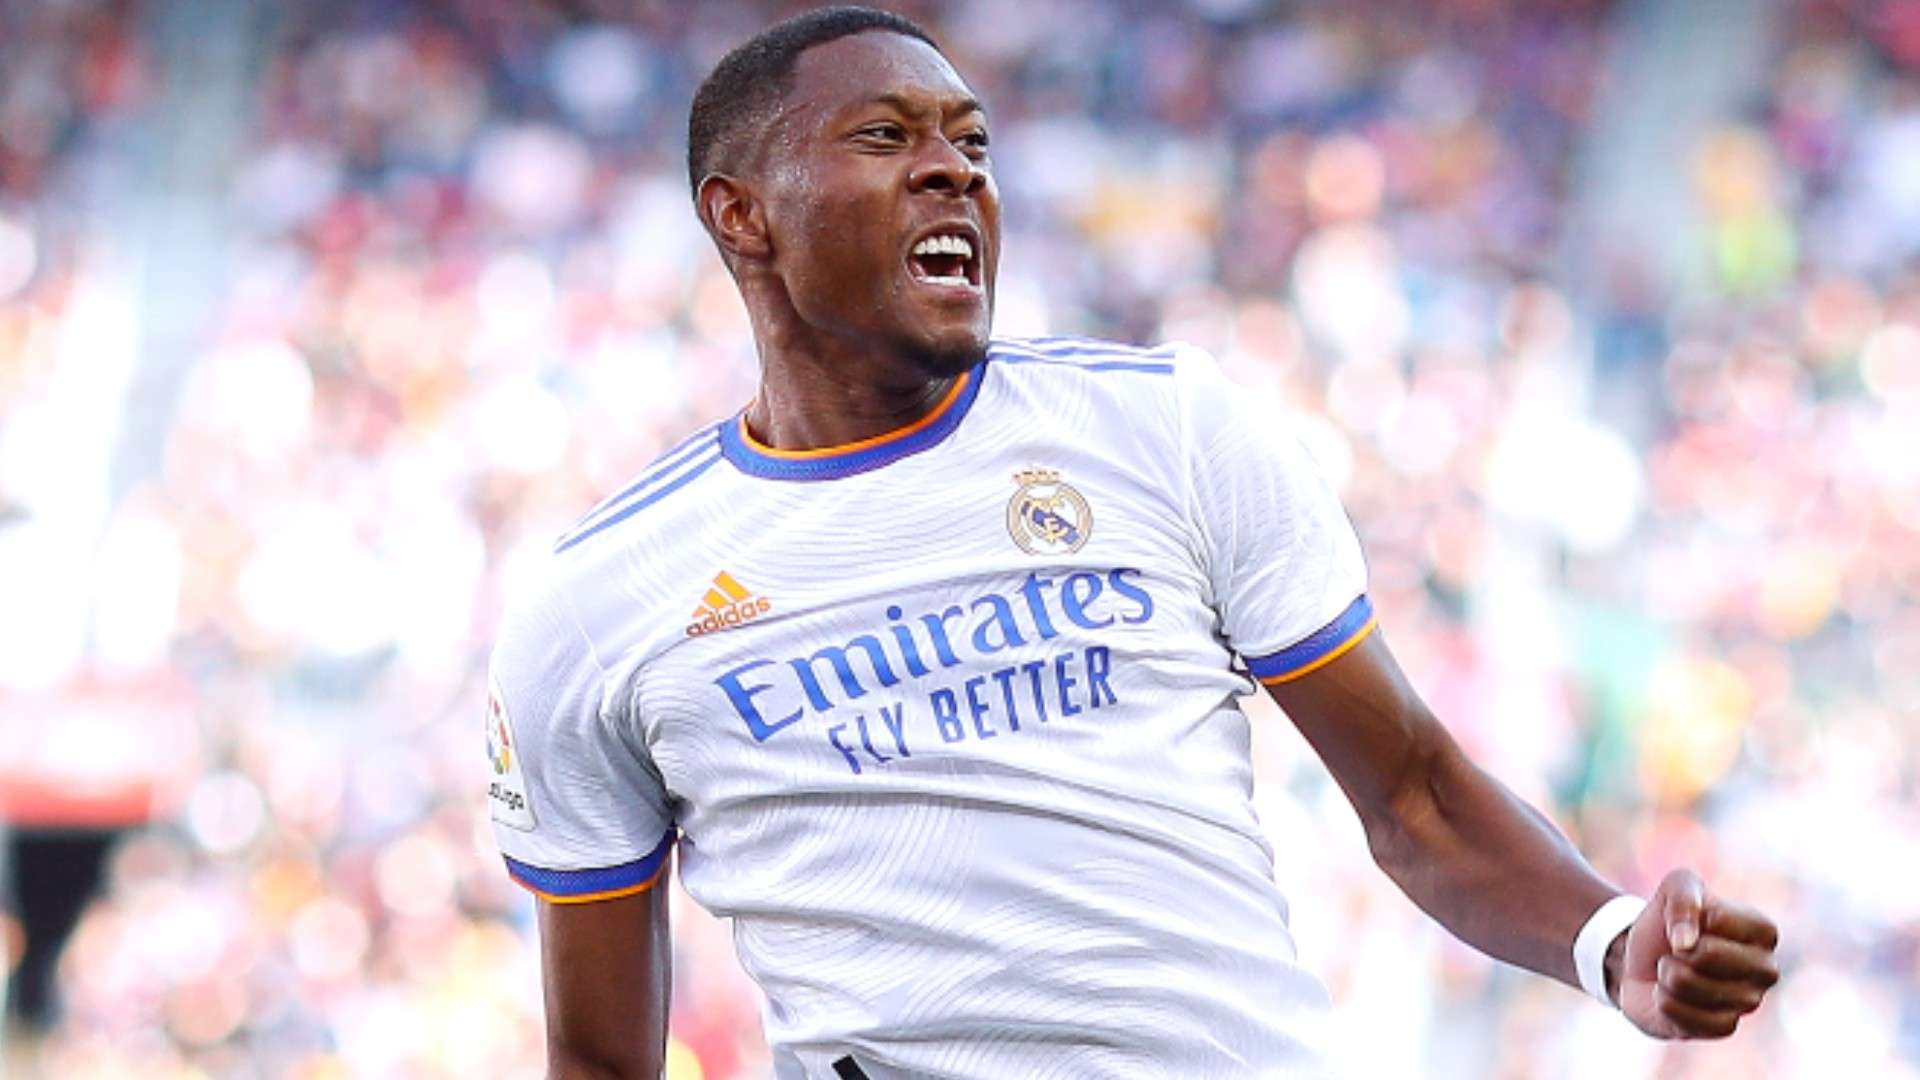 Barcelona vs. Real Madrid result: El Clasico goes to Real on goals by Alaba and Vasquez